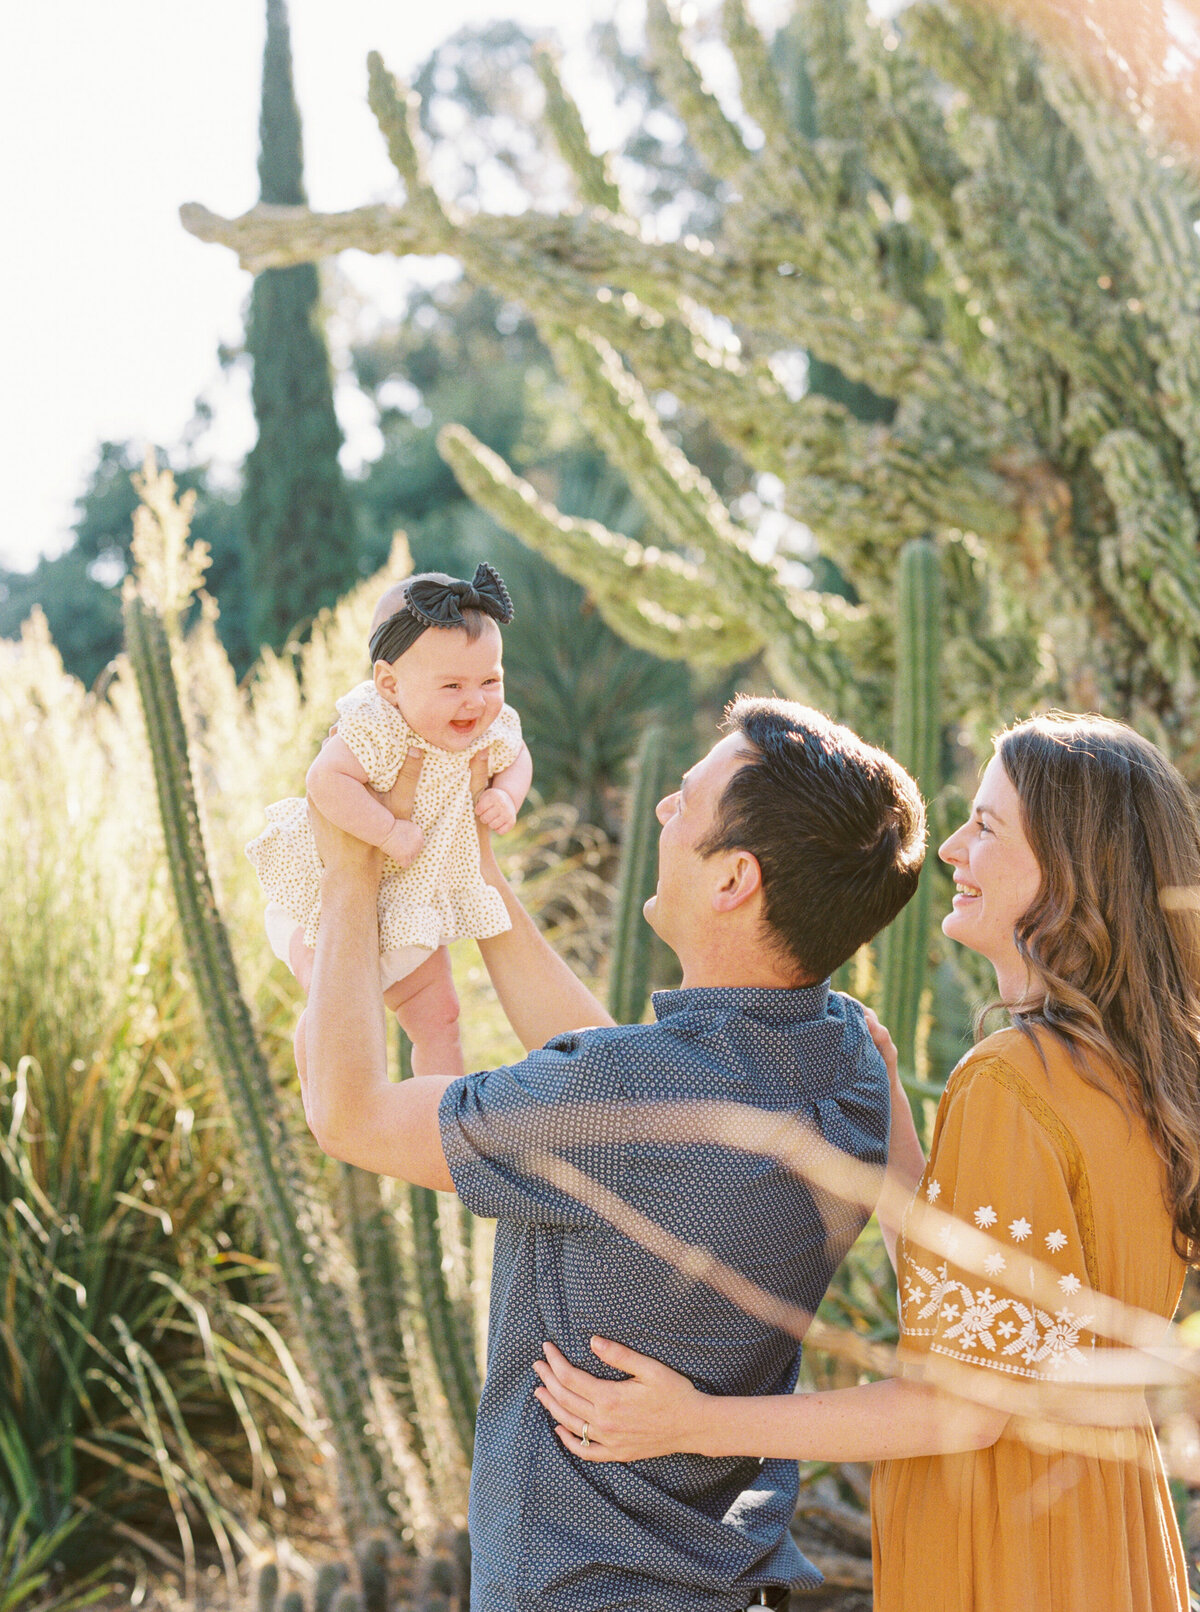 Olivia Marshall Photography- Cactus Desert Garden Family Photos-11